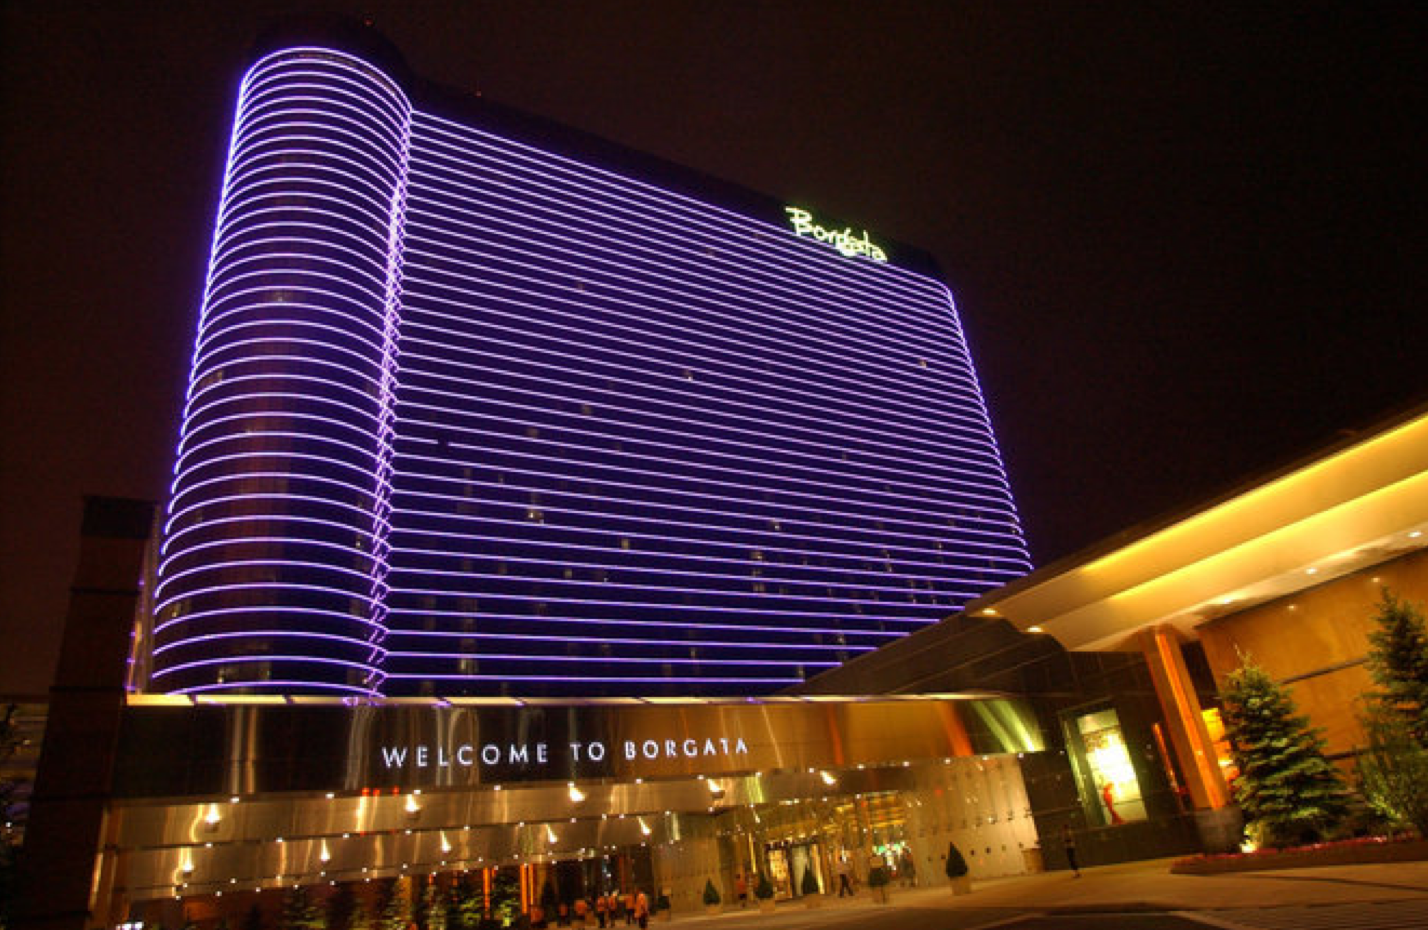 The borgata casino in atlantic casino online xasino gambling